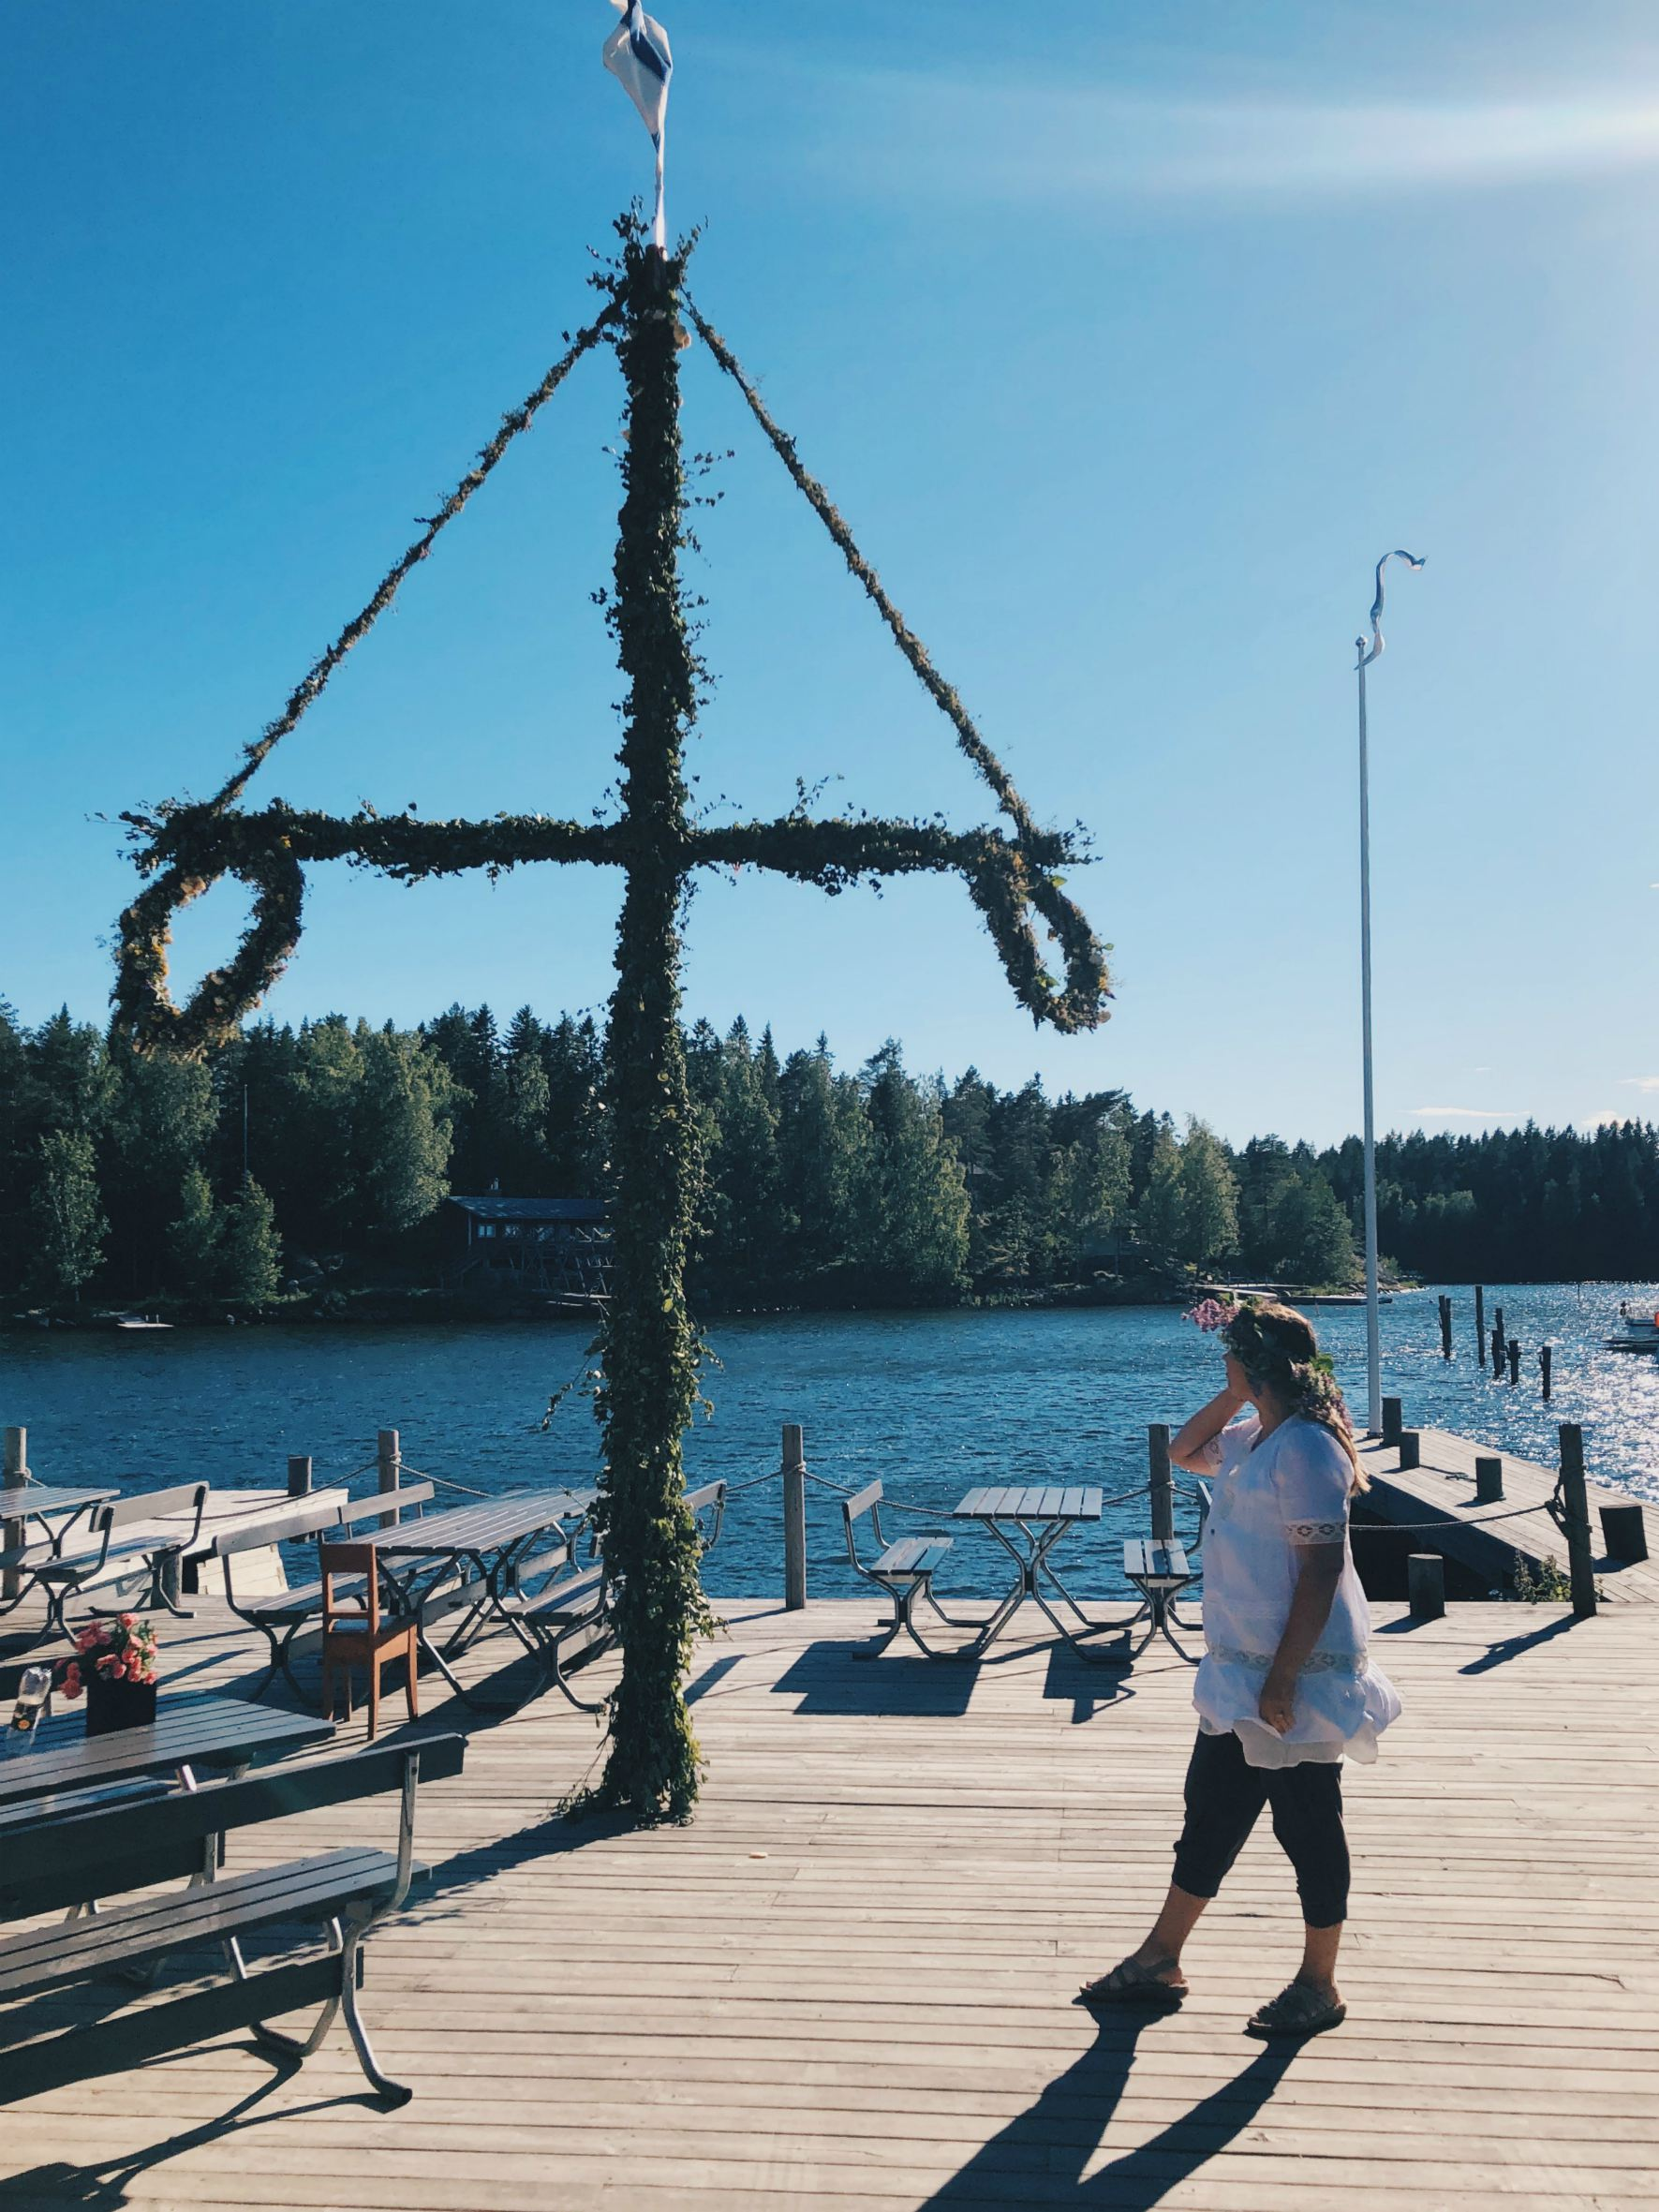 Here on the Swedish speaking coast you can always see some Swedish Midsummer poles.